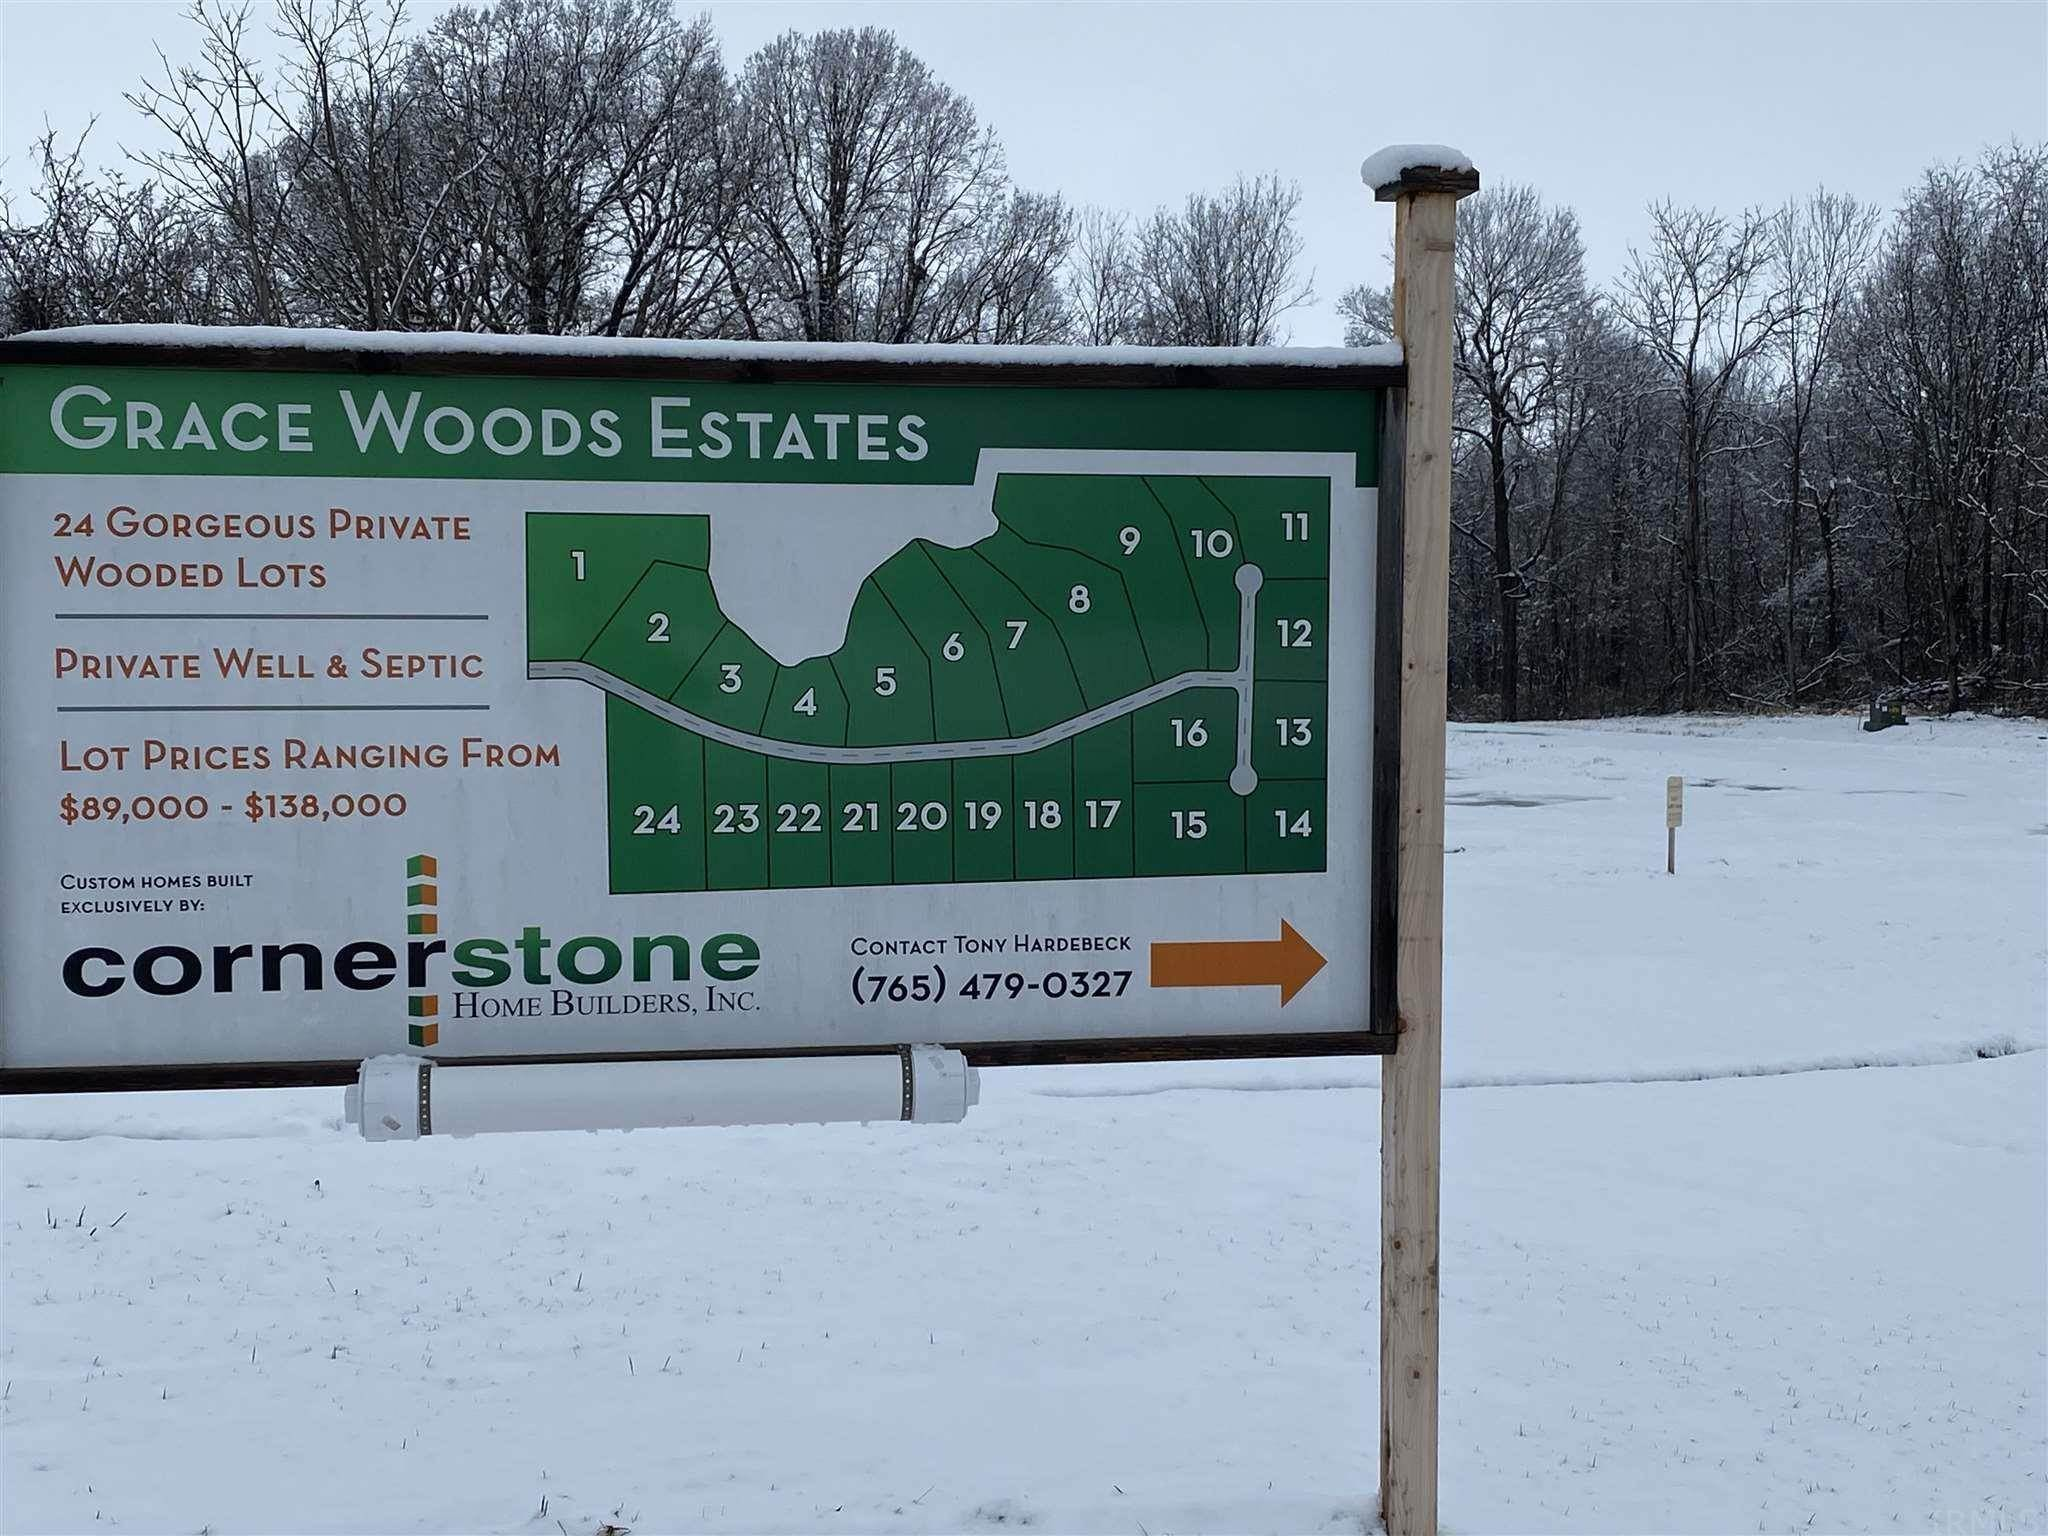 Residential Lots & Land for Sale at 9324 Herring Lane Battle Ground, Indiana 47920 United States